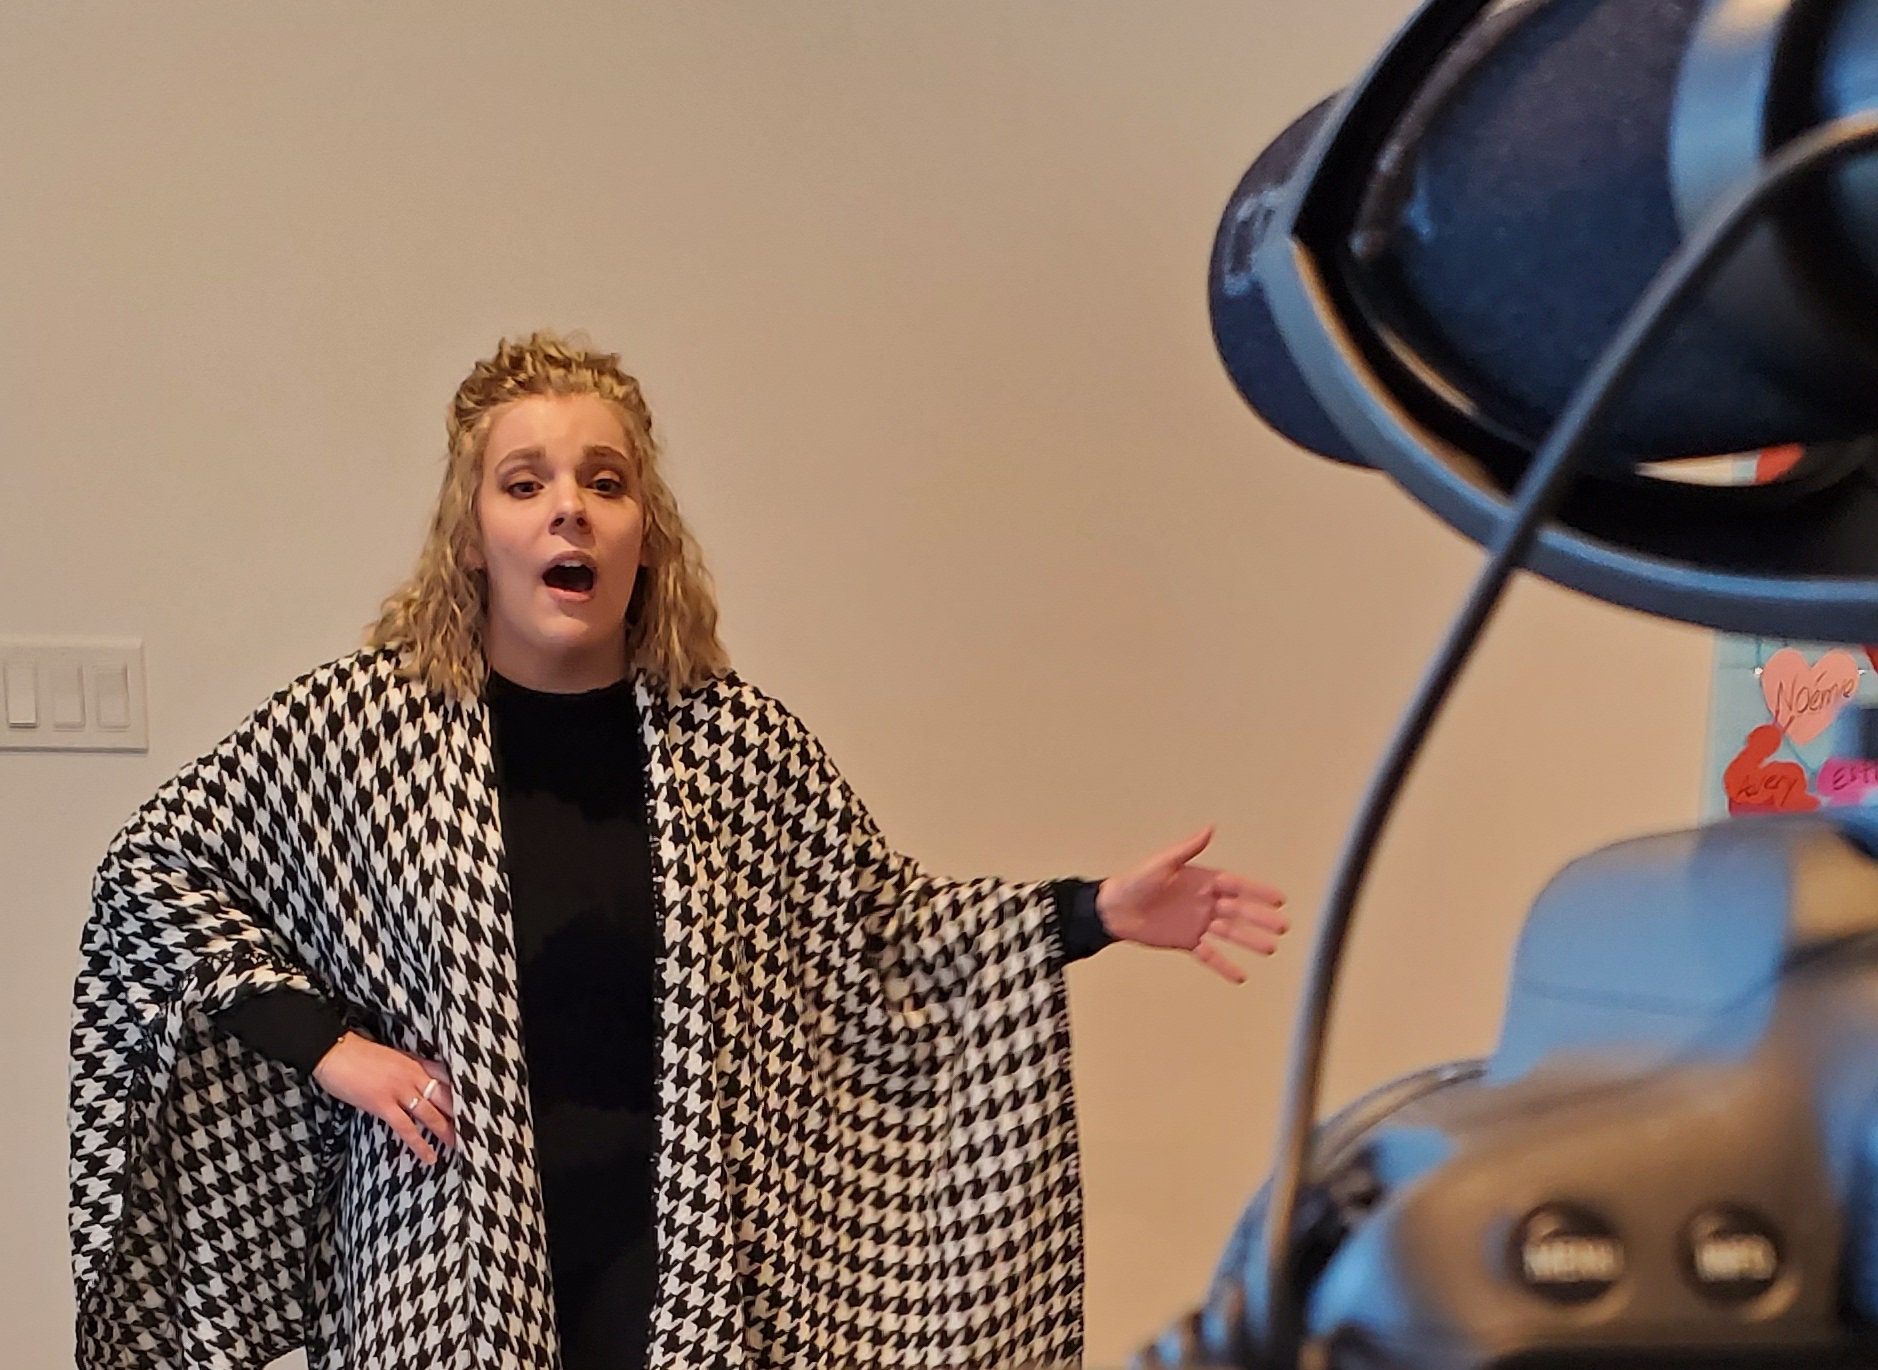 """""""Cloe Afton Papworth performs before a video camera to record her vocal entry for the First Virtual Shuswap Music Festival held in April 2021."""" Photo Credit: C. Papworth"""